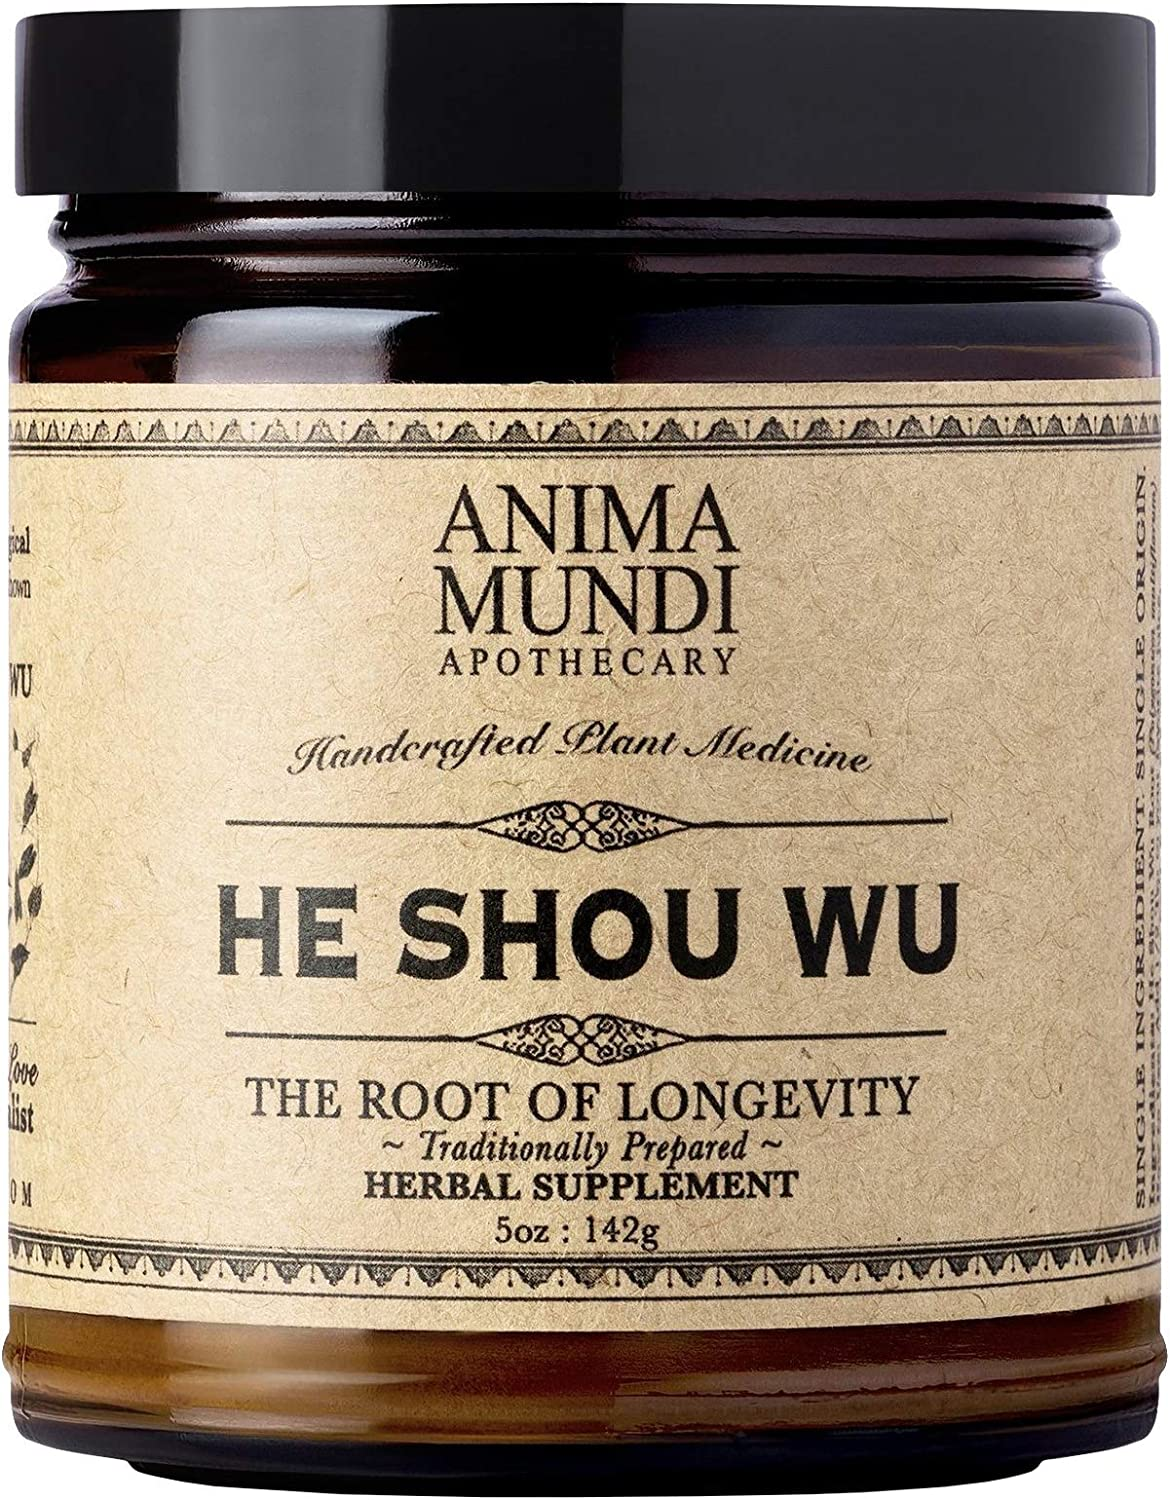 Anima Mundi He Shou Wu Powder - Pure Fo Ti Extract to Support Vitality, Powerful 10:1 Extract with No Additives or FIllers (5oz / 142g)